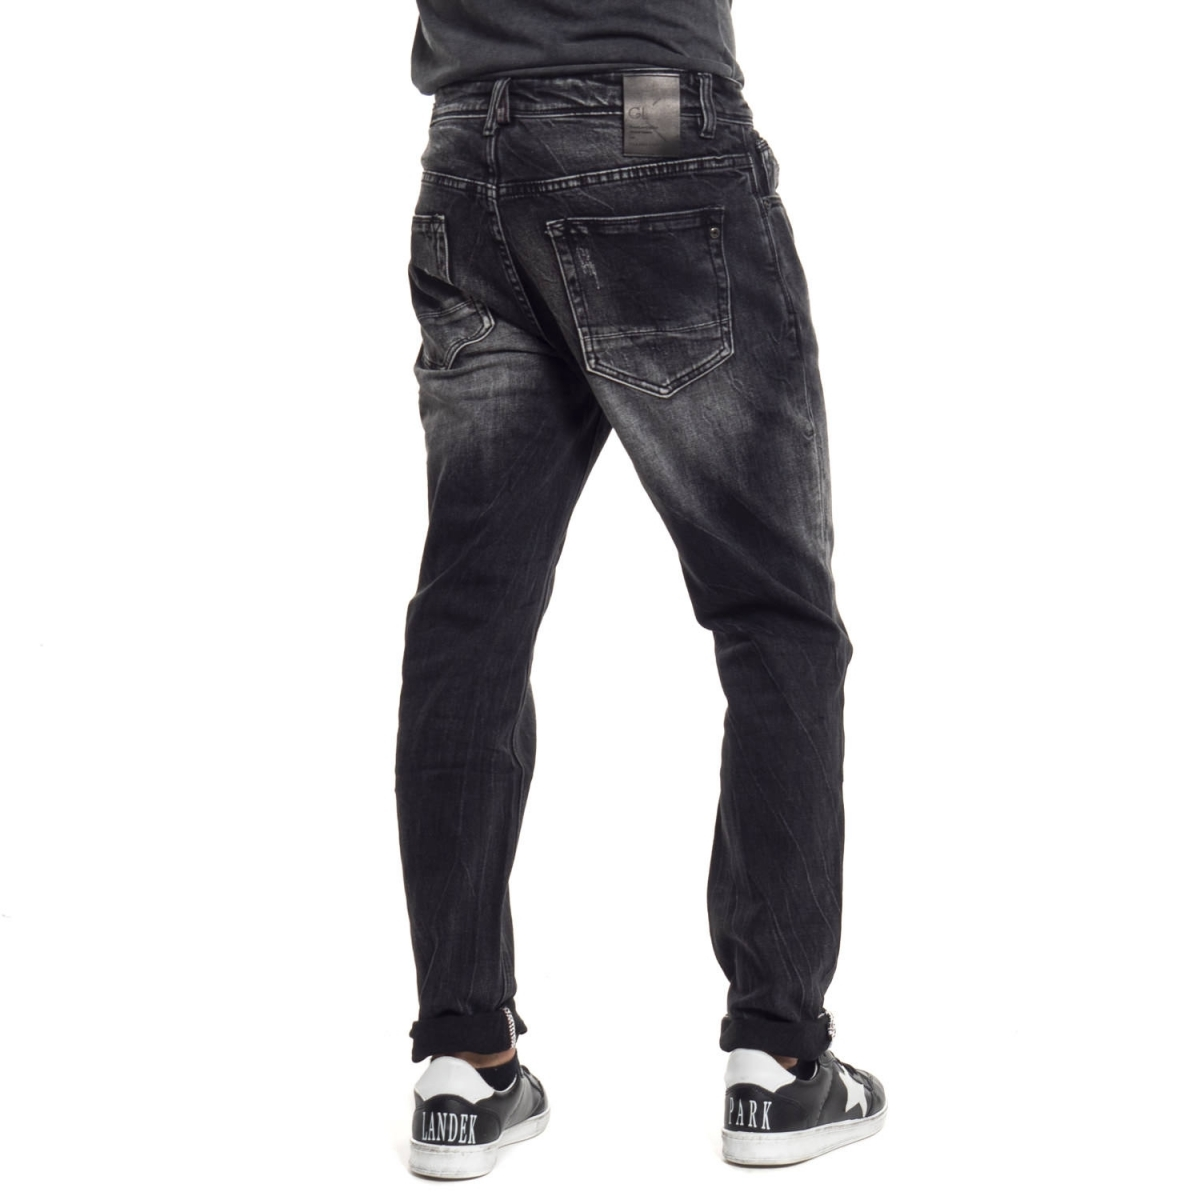 ropa Jeans hombre Jeans GL2005T GIANNI LUPO Cafedelmar Shop